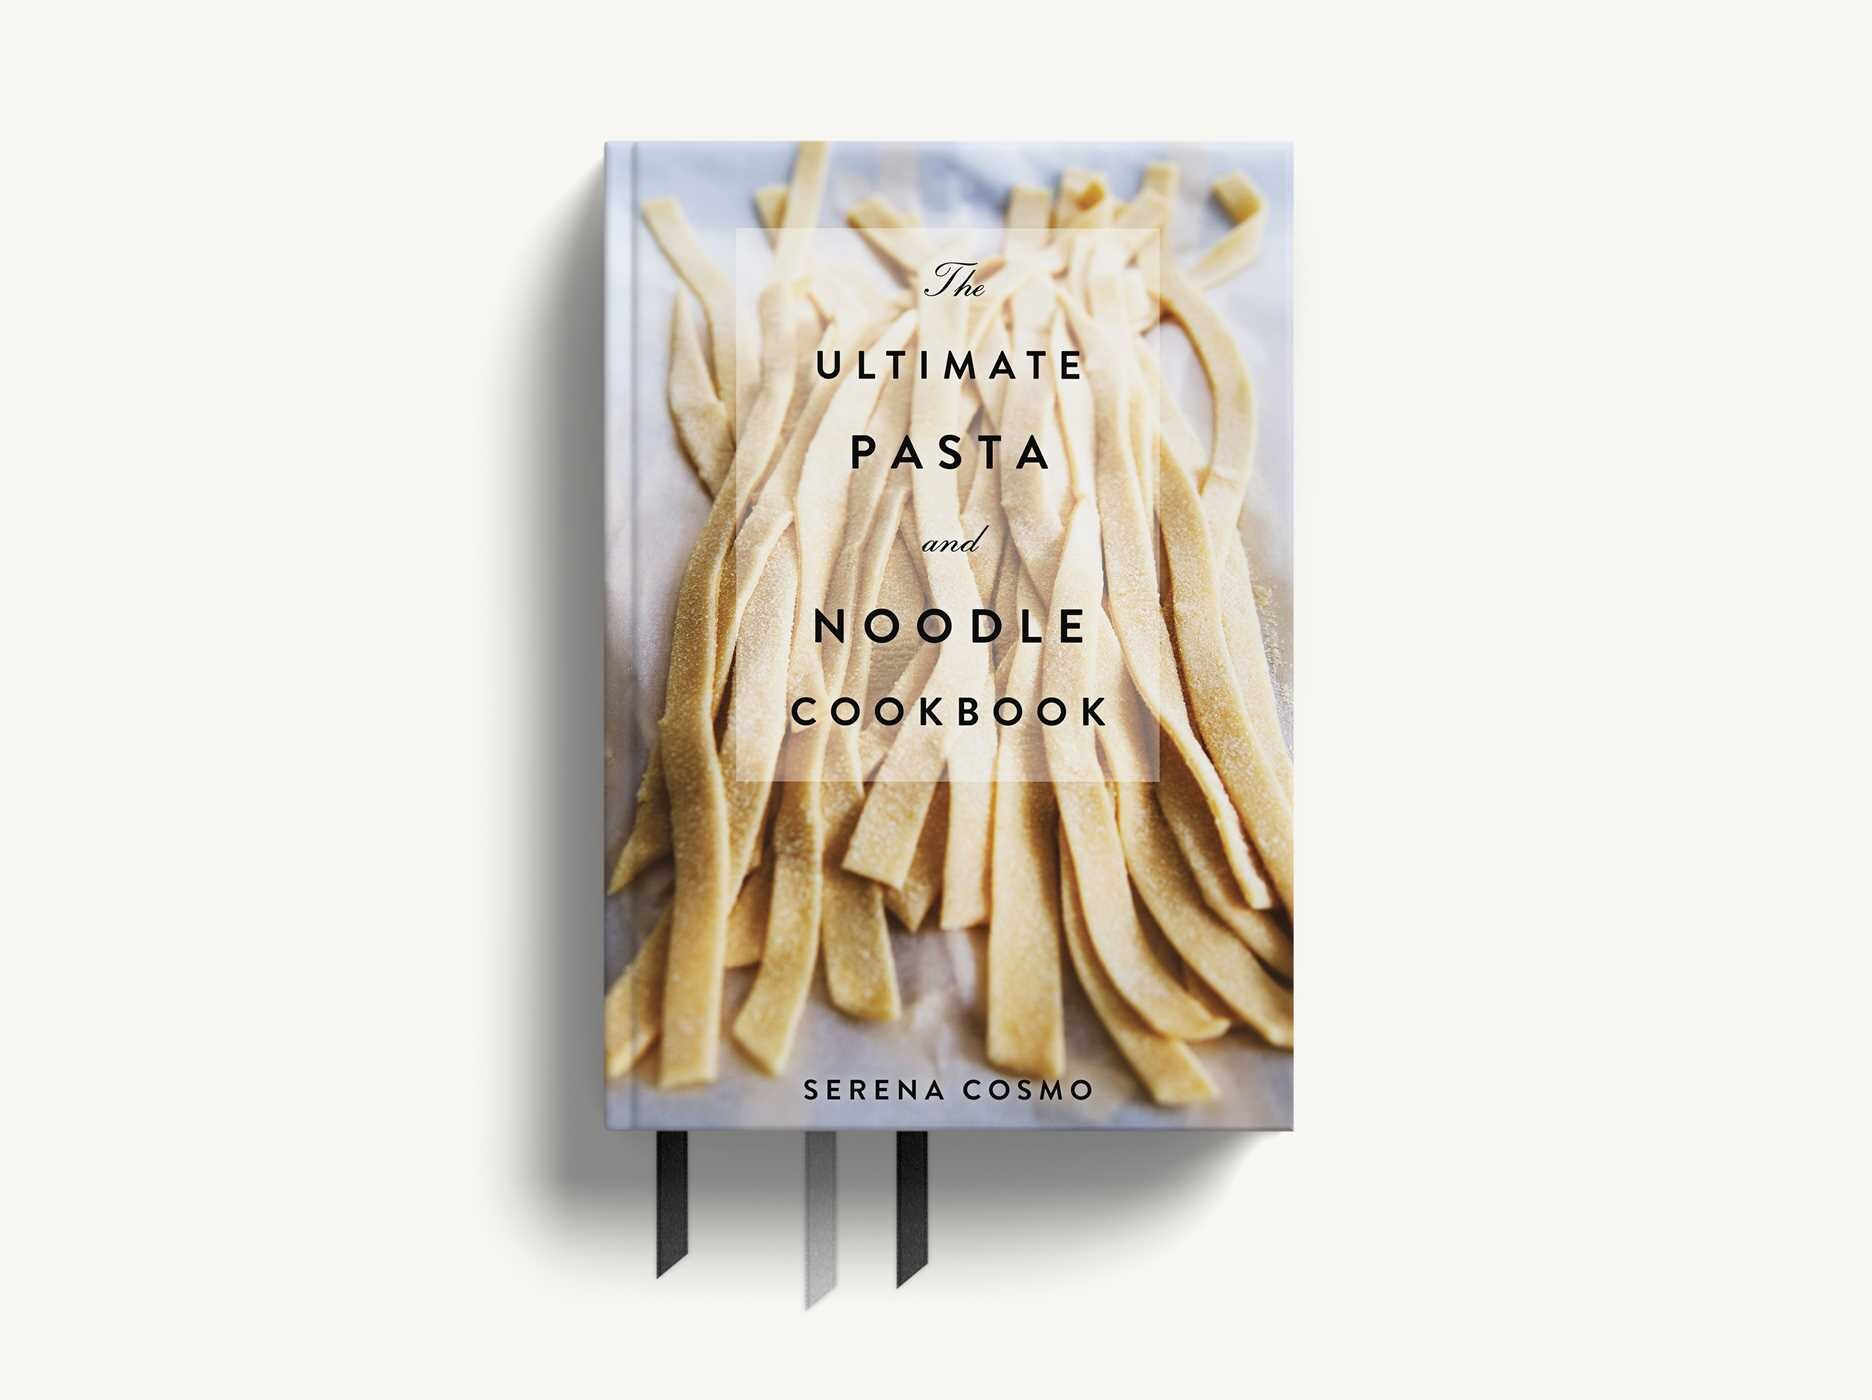 The ultimate pasta and noodle cookbook 9781604337334.in01